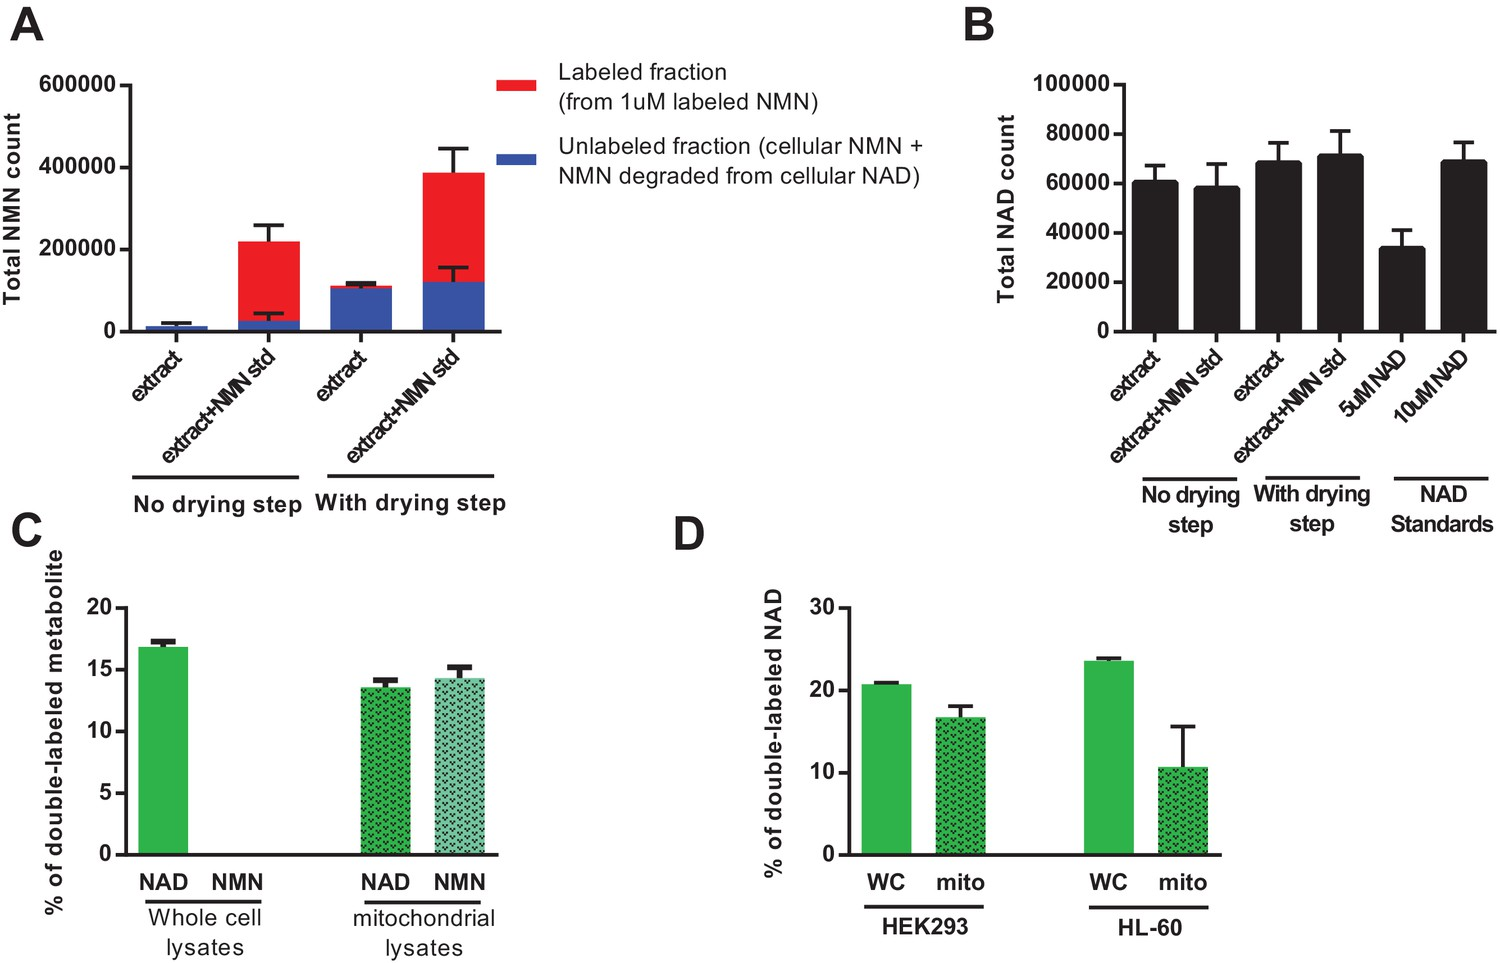 hight resolution of direct injection of methanolic extracts reveals preferential labeling and mitochondrial uptake of nad over nmn